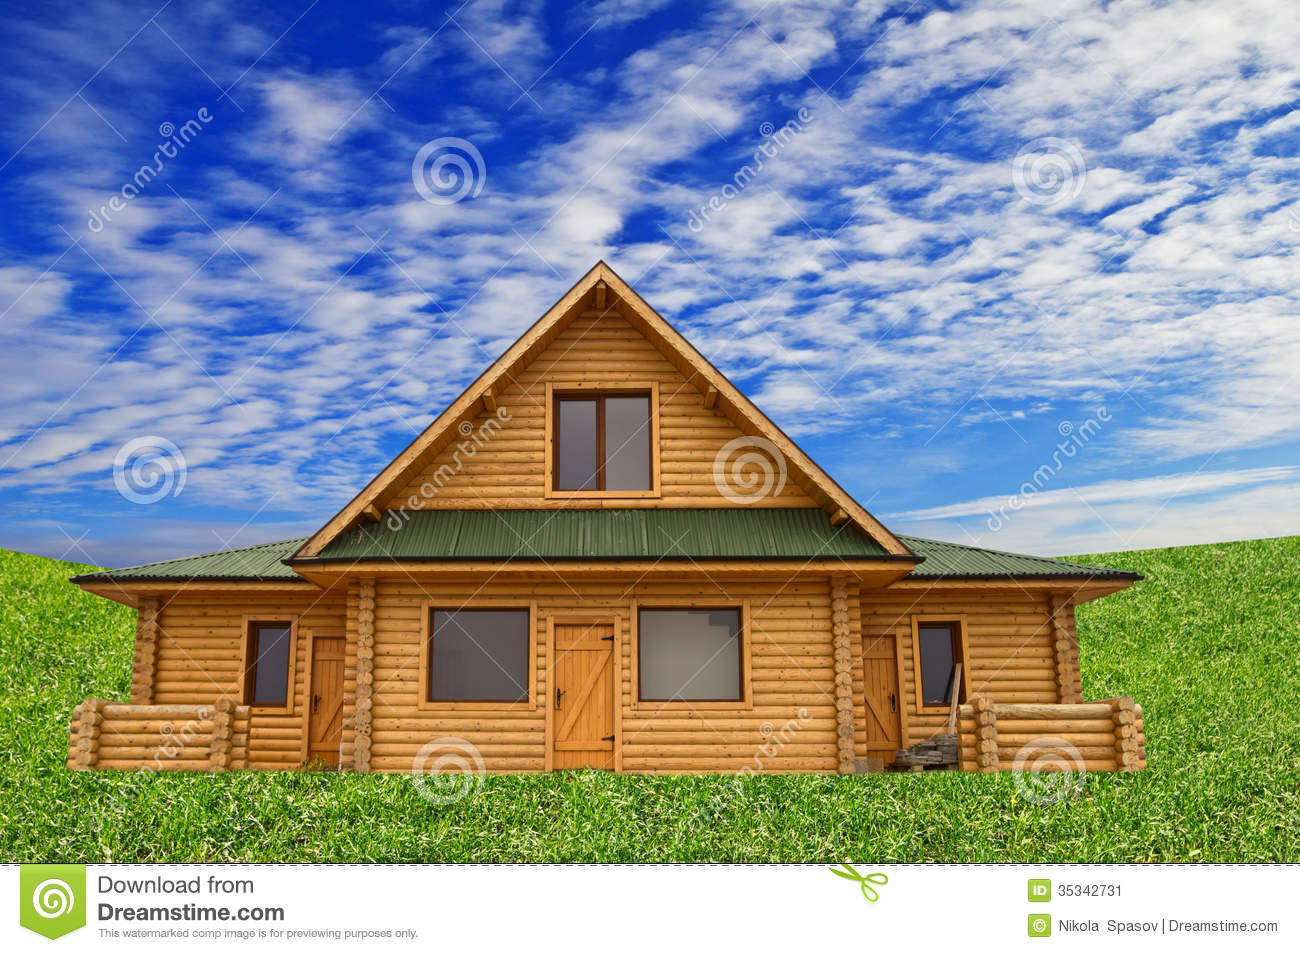 Dream eco home house new valley wooden